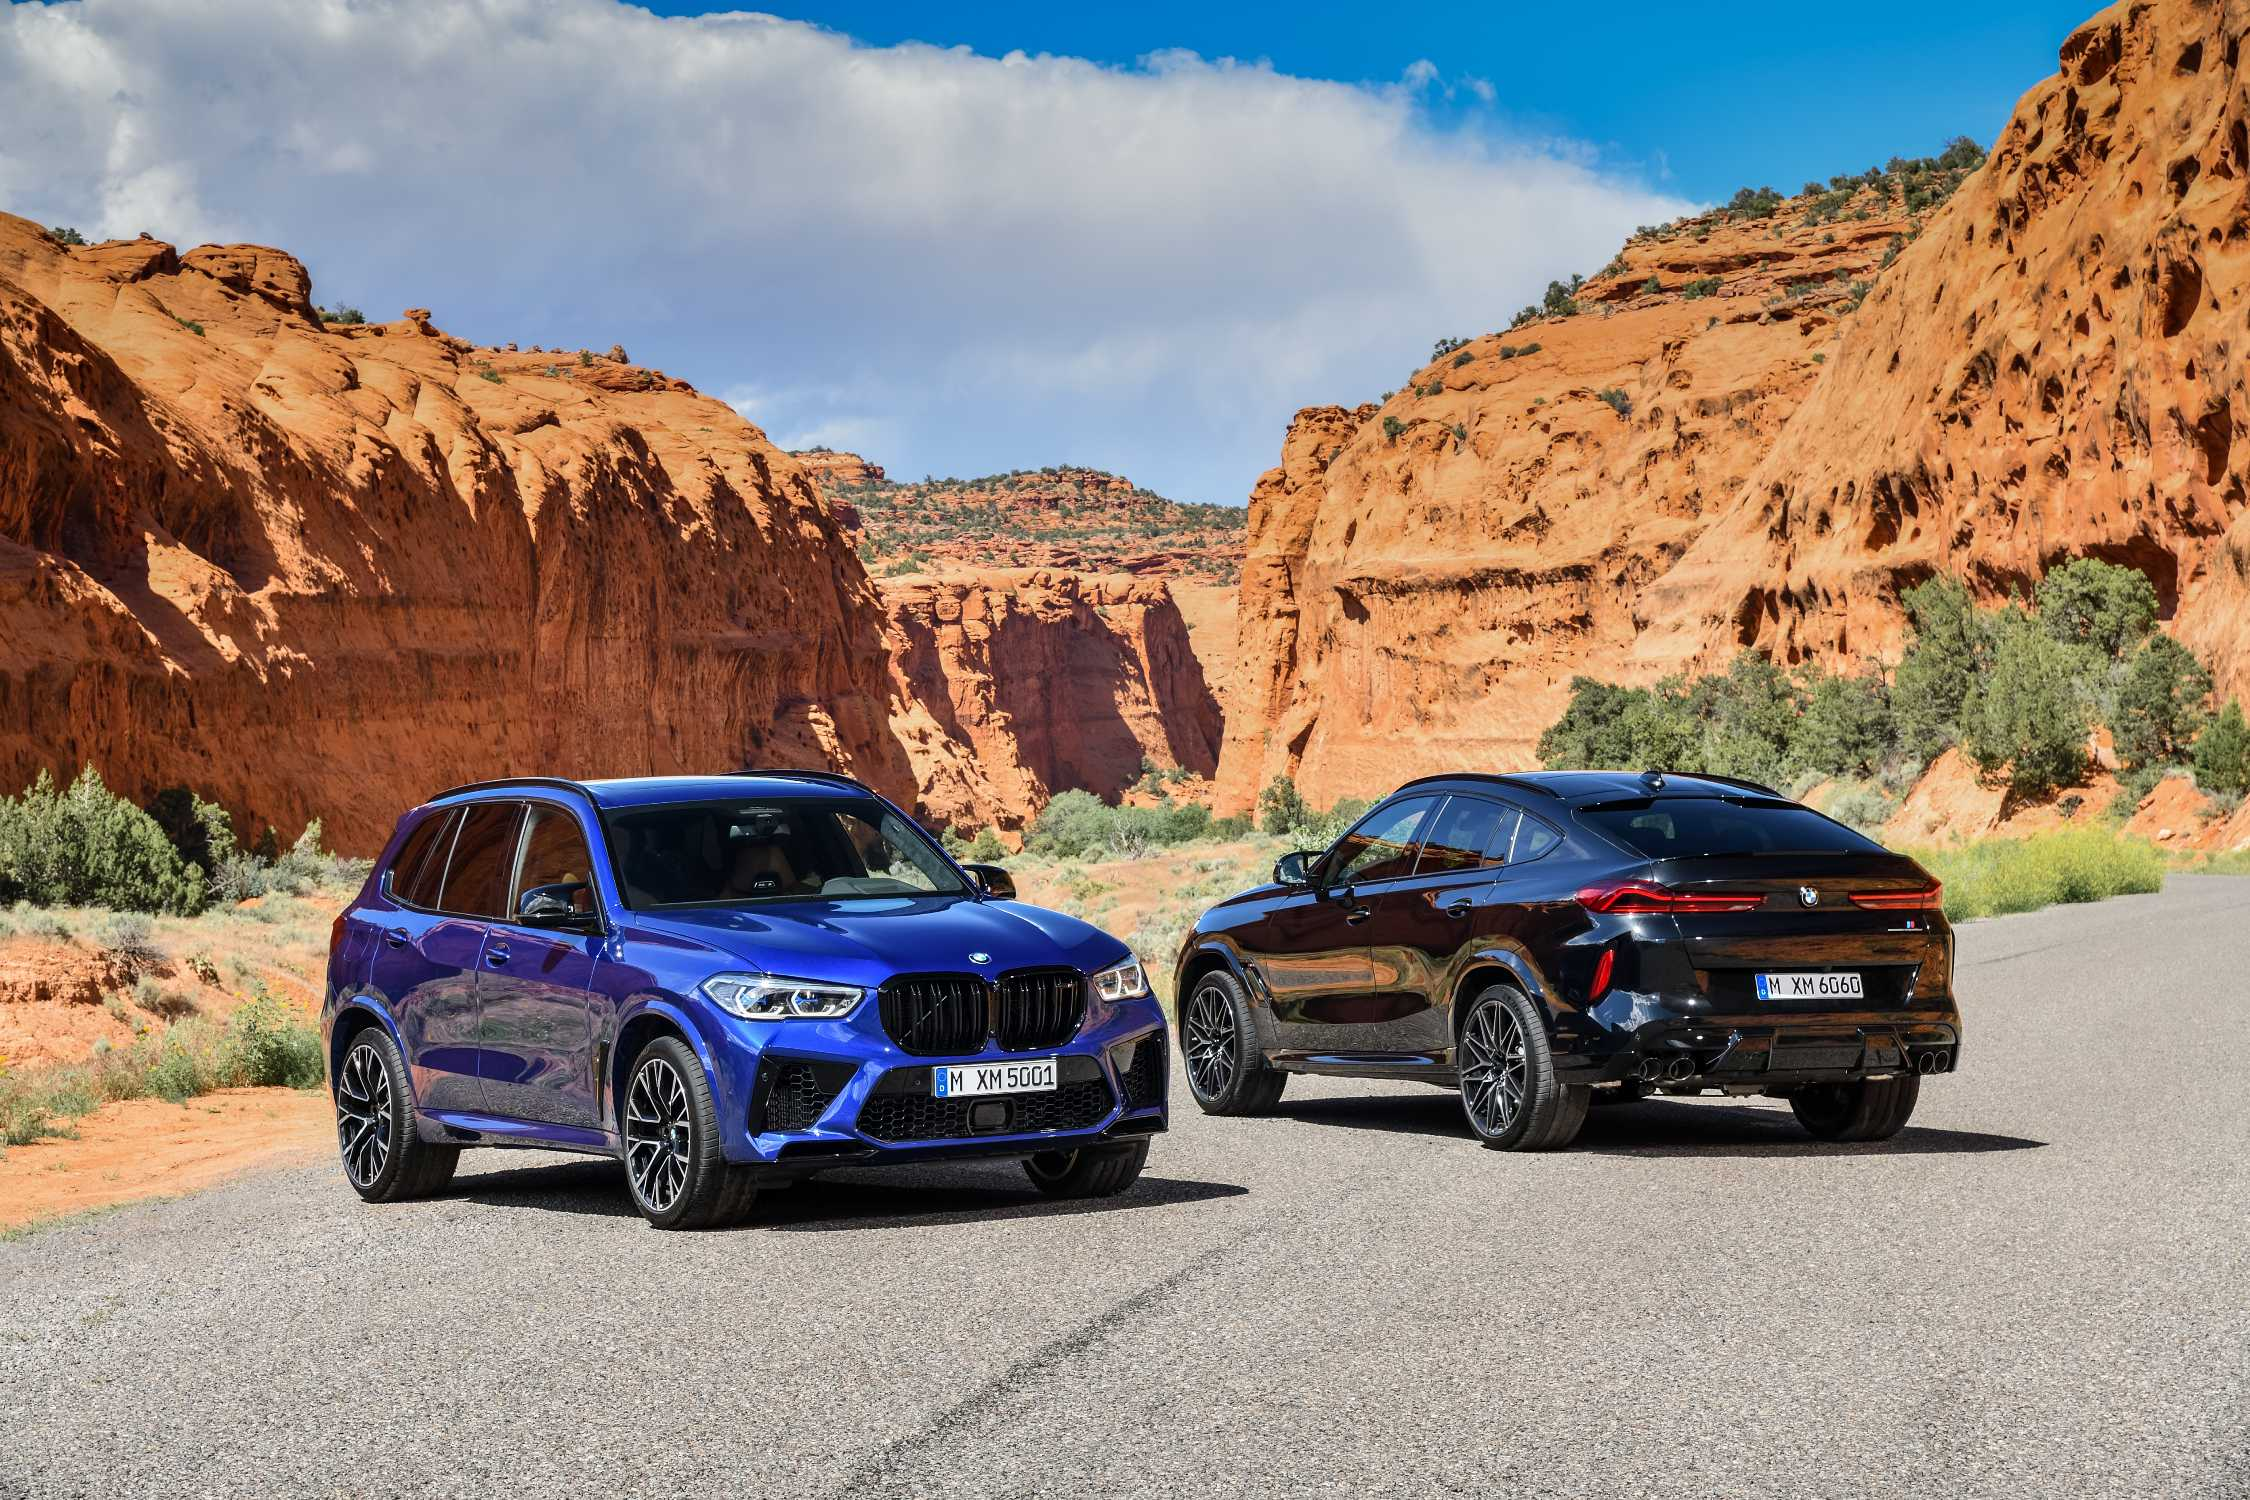 The New Bmw X5 M And Bmw X5 M Competition The New Bmw X6 M